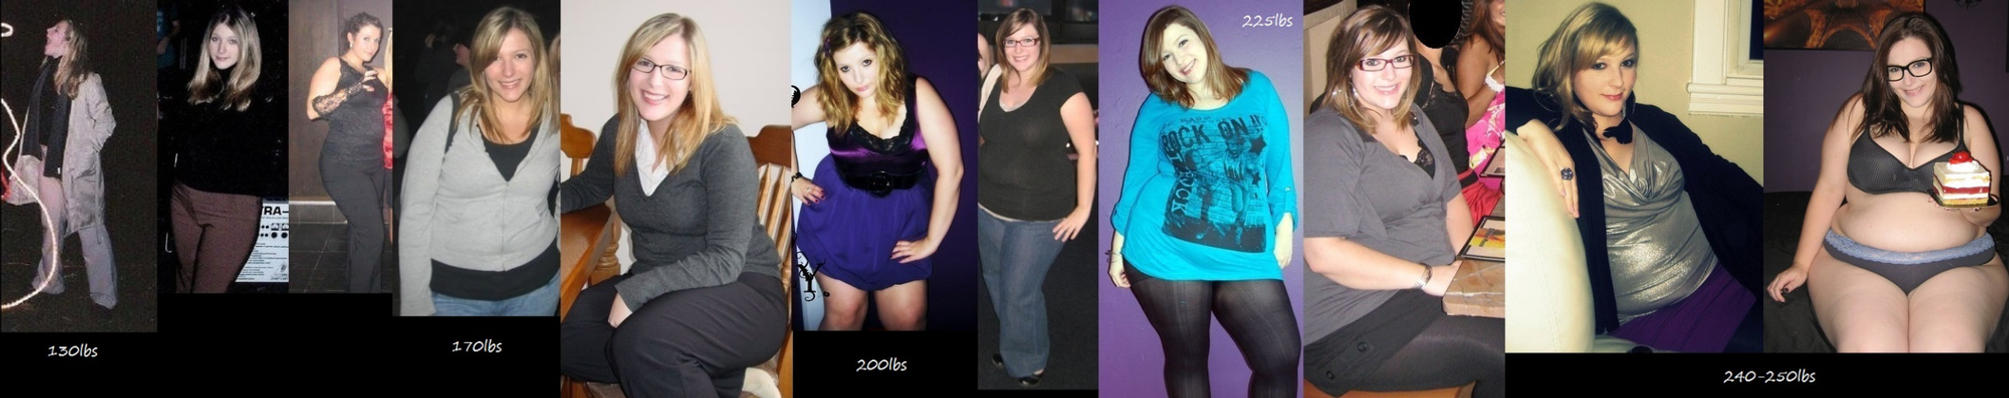 Weight Gain Progression by TJF235